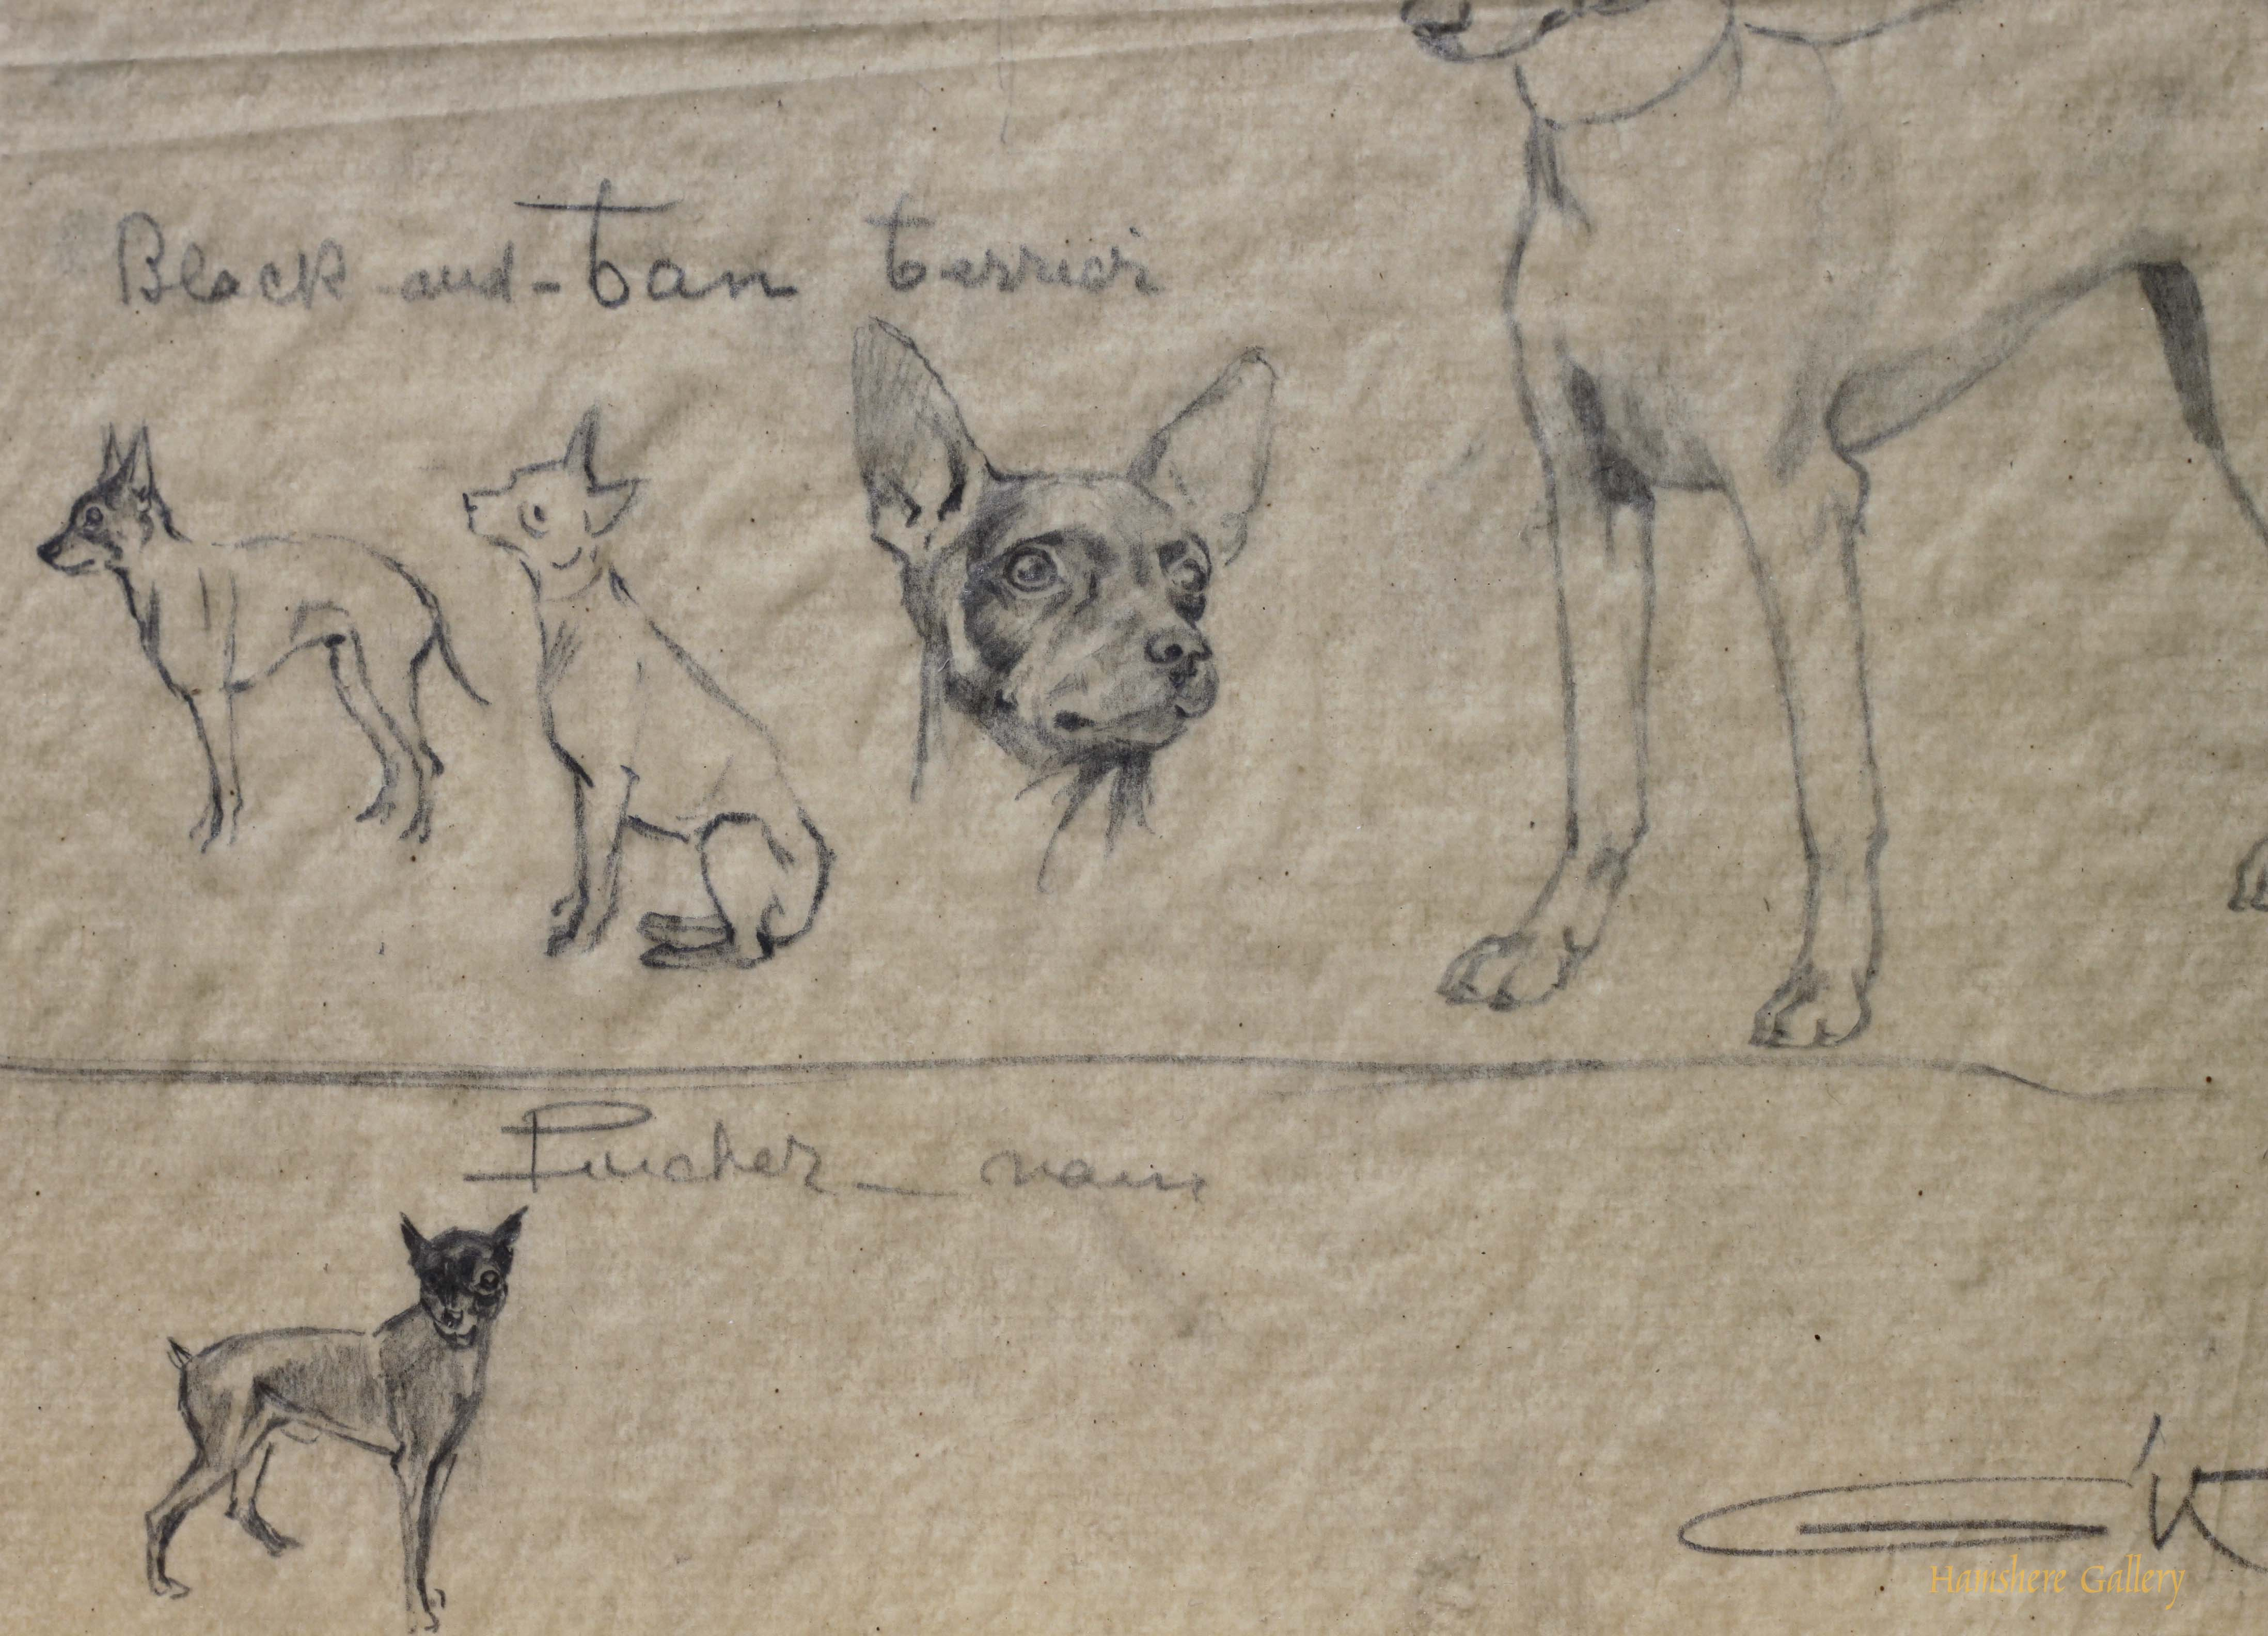 Click to see full size: Manchester Terrier / Pinscher pencil studies by Borris O�Klein / Jean Herblet- Manchester Terrier / Pinscher pencil studies by Borris O�Klein / Jean Herblet